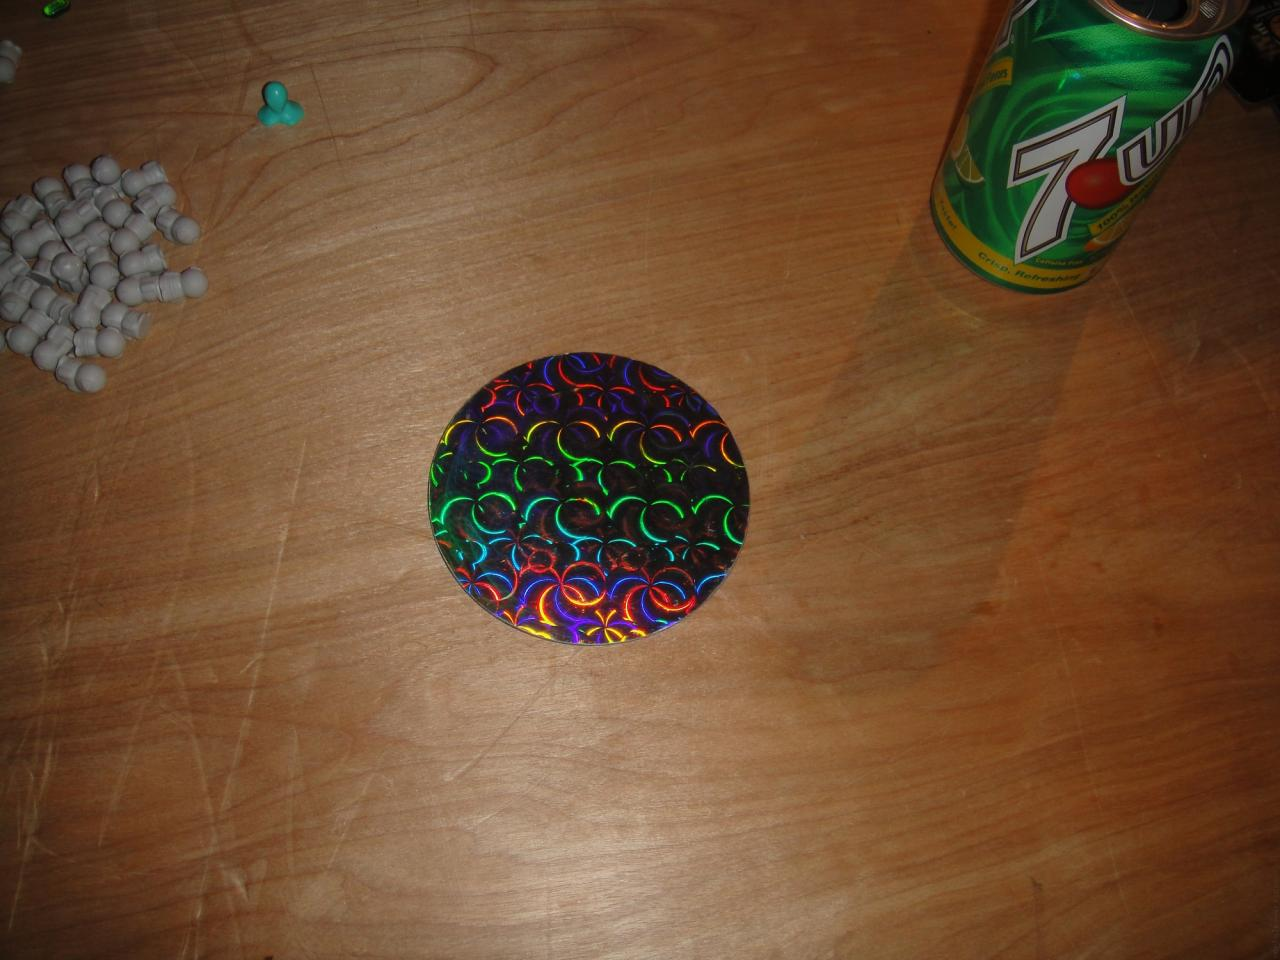 Holographic Disk